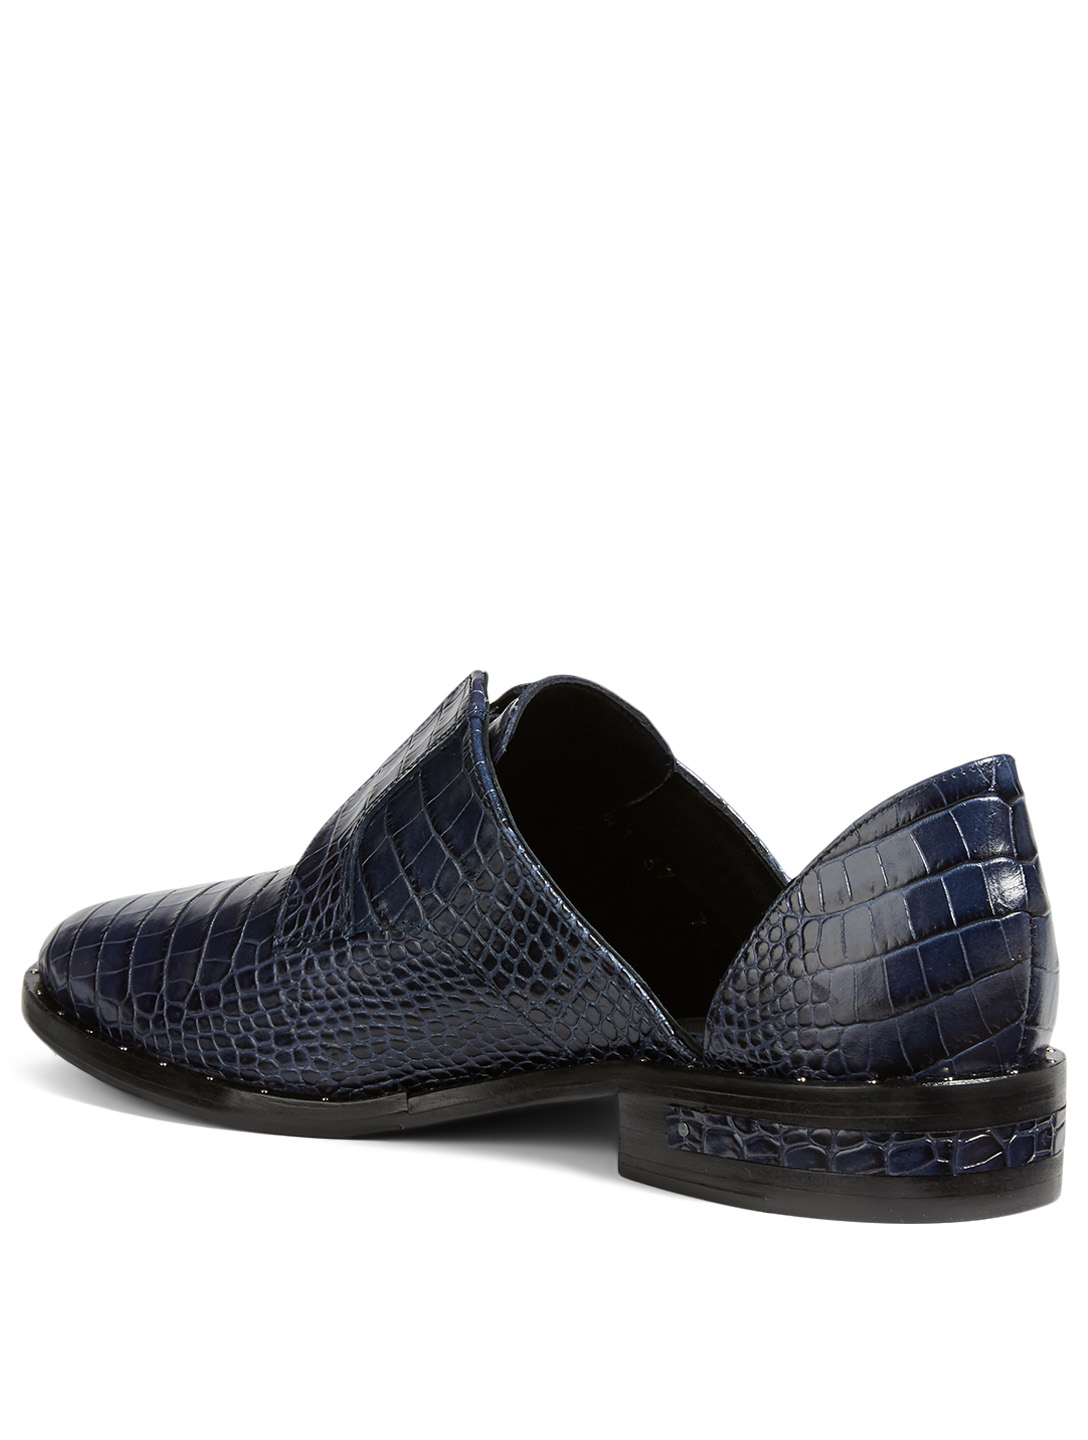 FREDA SALVADOR Wear Croc-Embossed Laceless D'Orsay Derby Shoes Women's Blue